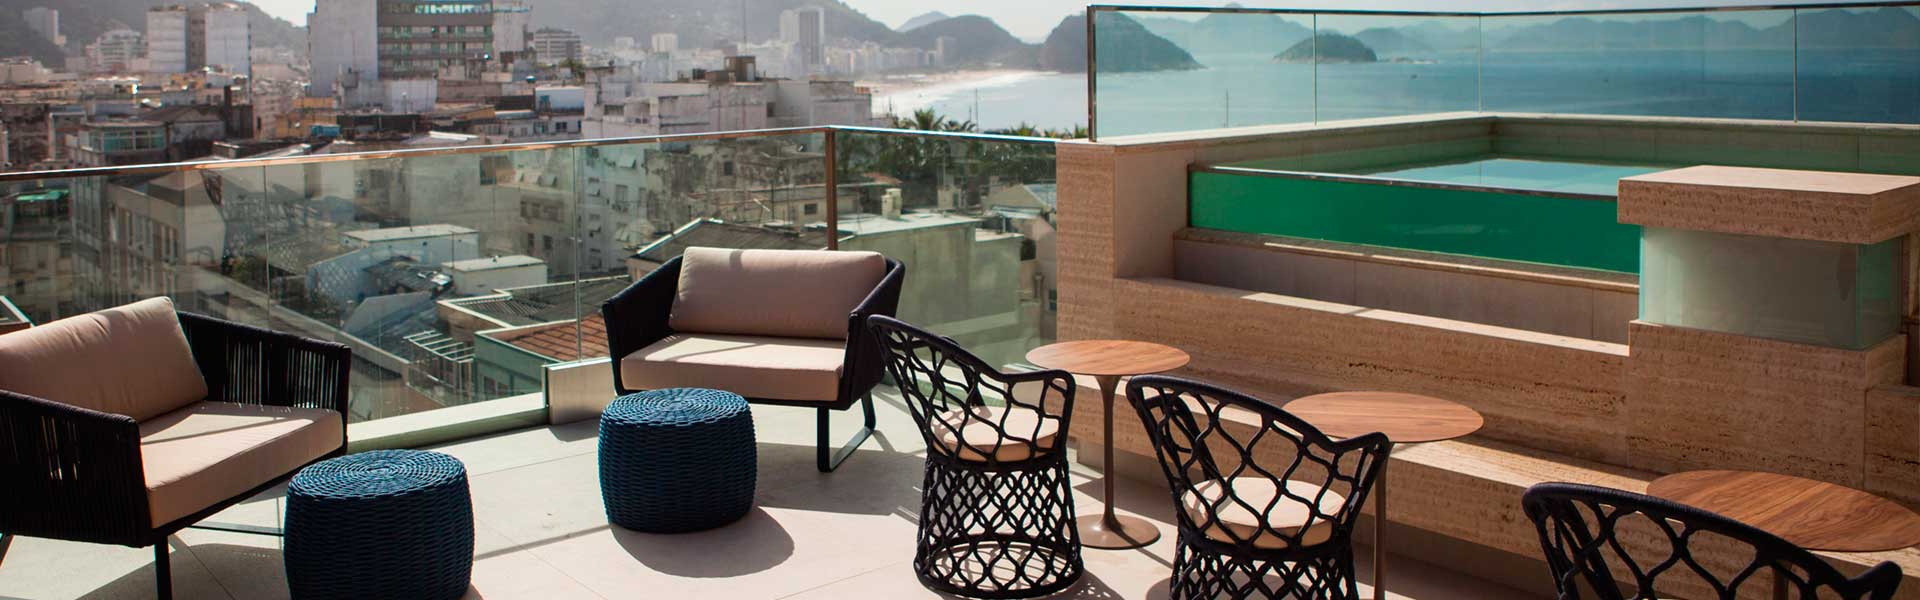 sl-interno-ritz-copacabana-rooftop